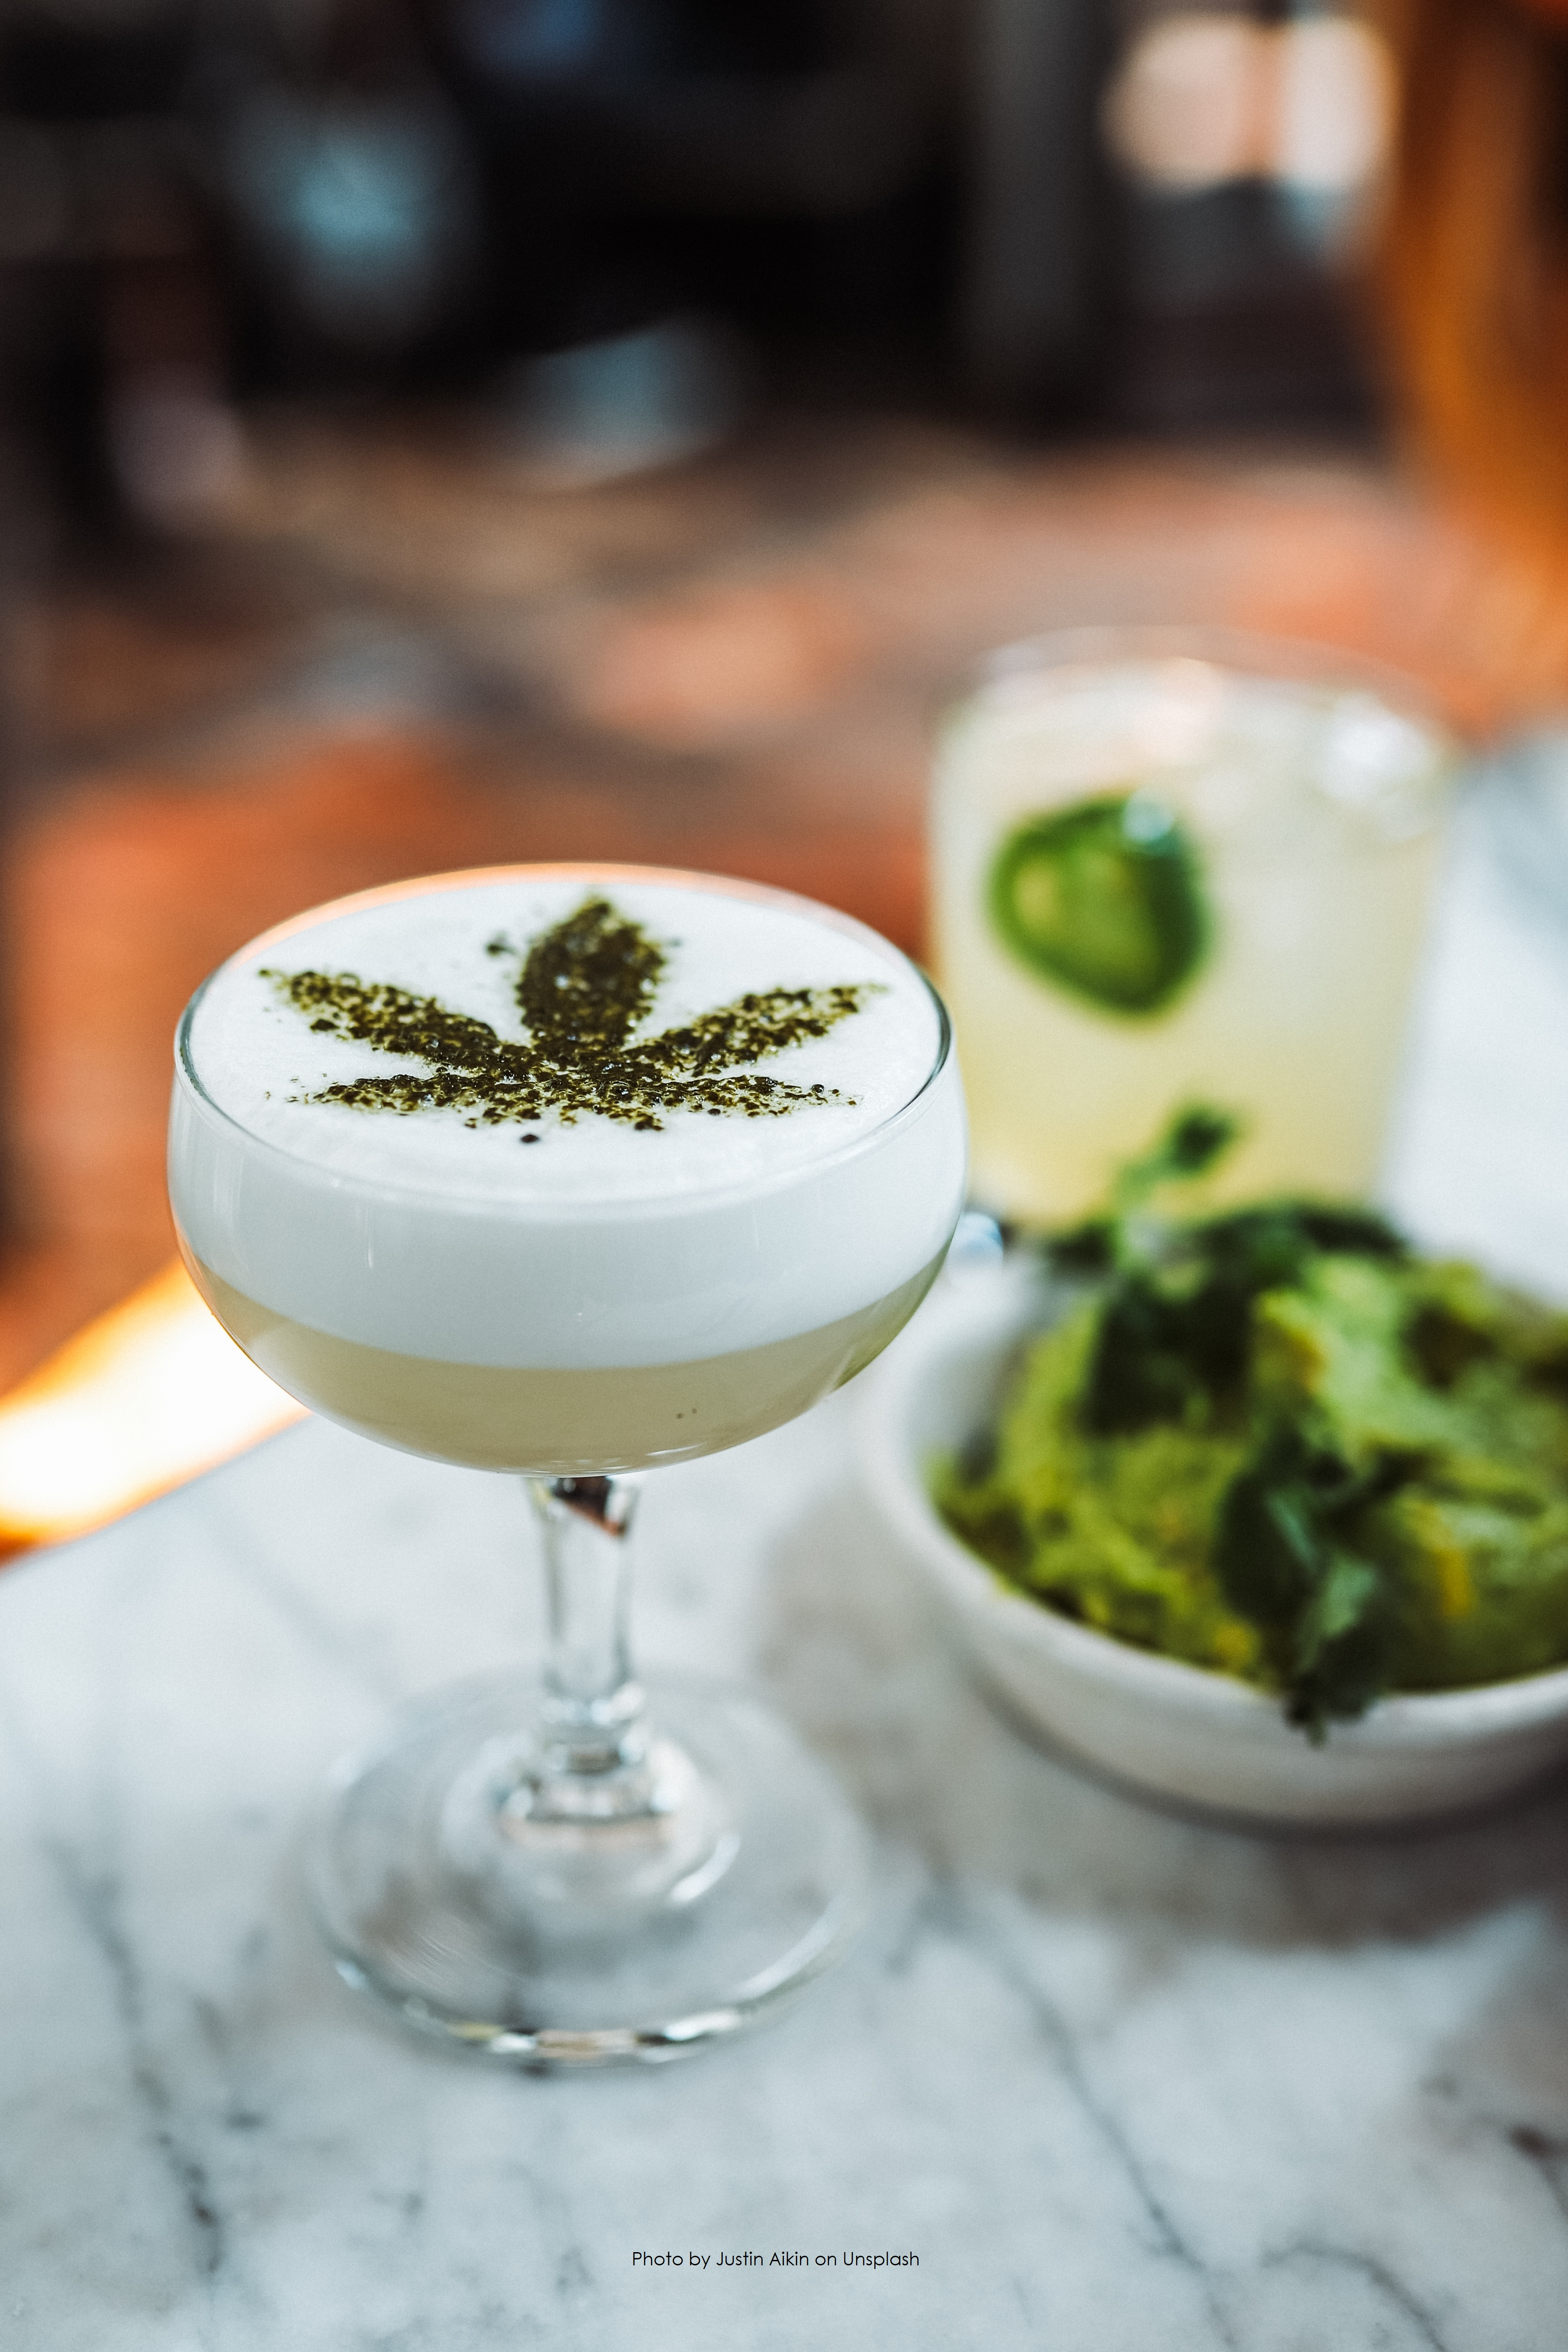 drink-with-cannabis-leaf-design